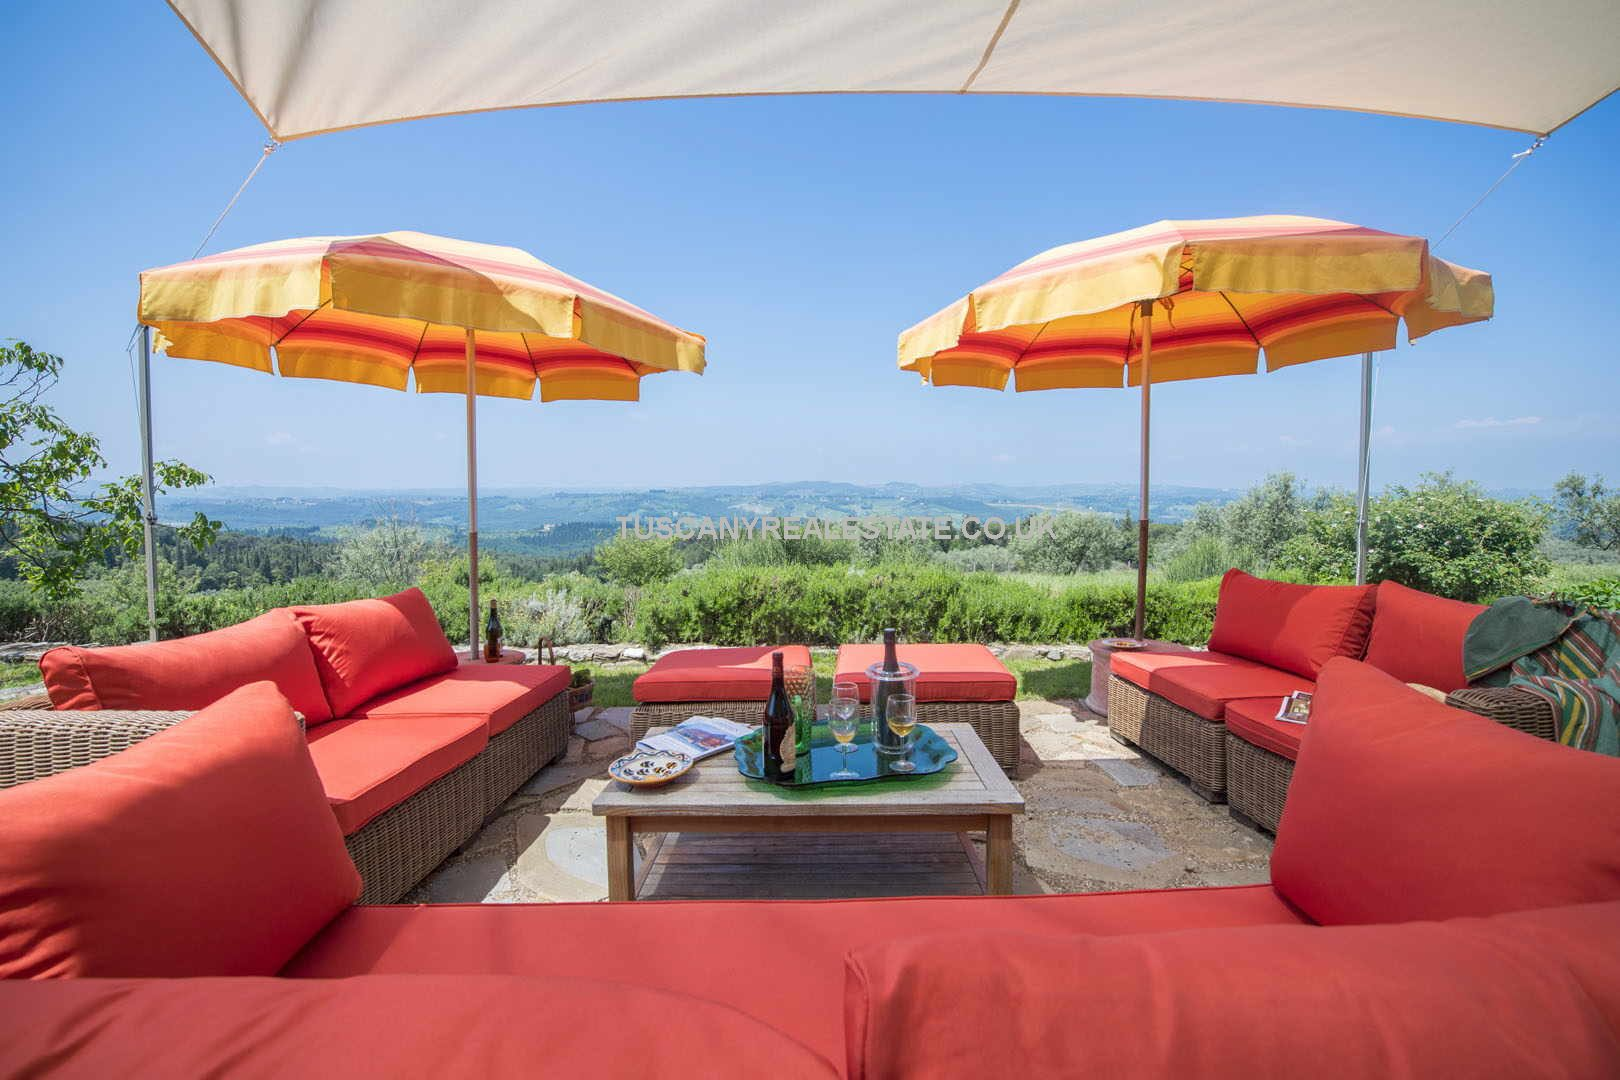 Florence Tuscany, countryside villa with swimming pool, garden and olive grove